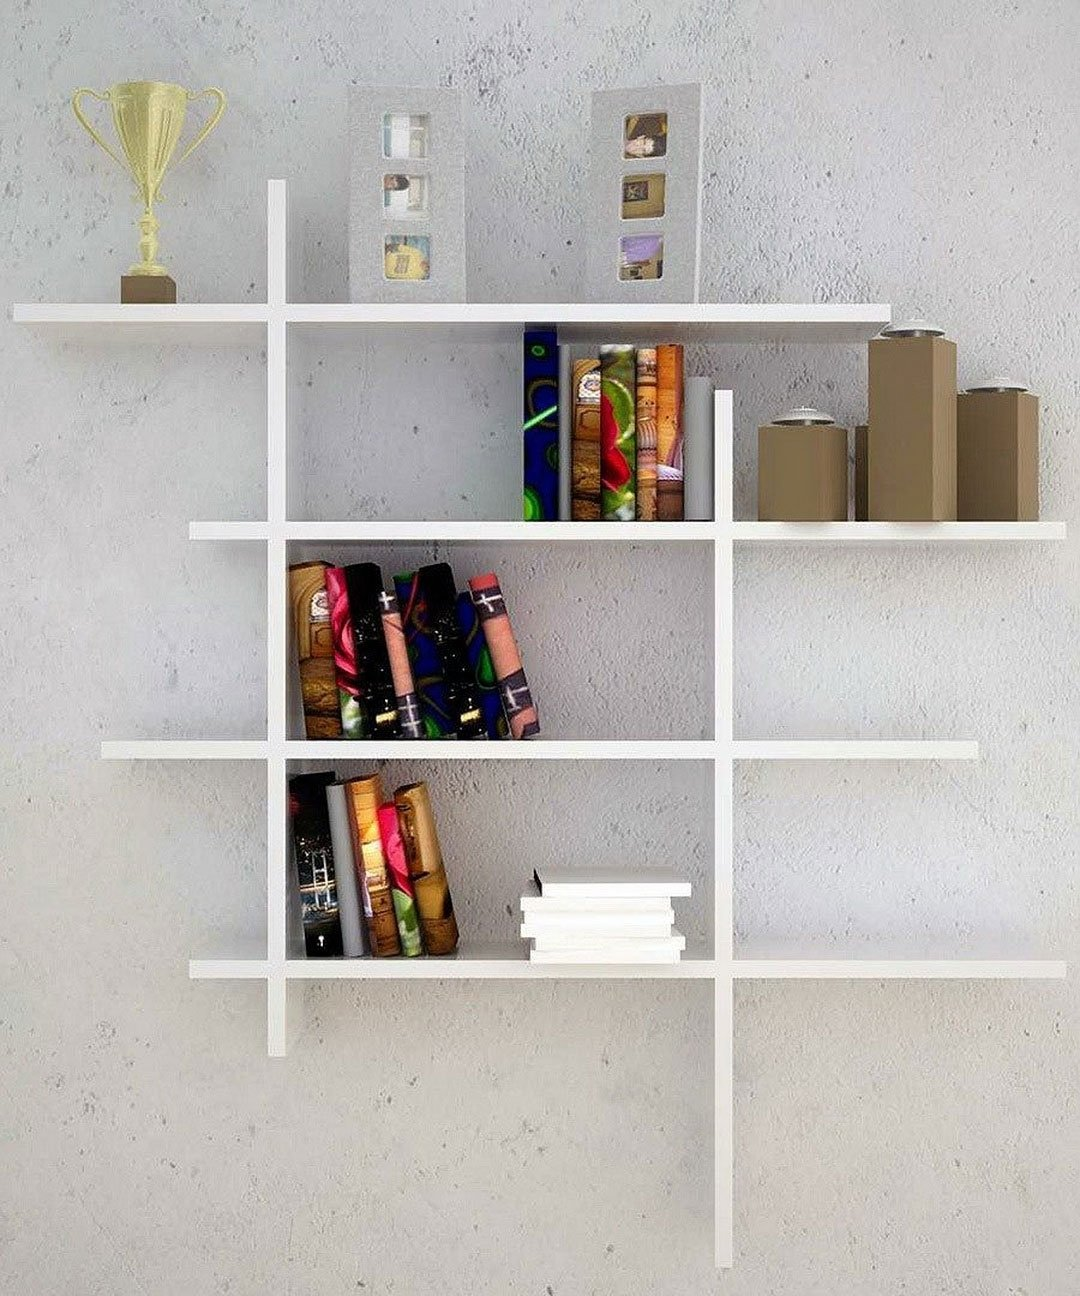 10 Amazing Shelving Ideas For Bedroom Walls engaging bedroom wall shelving ideas small room fresh on